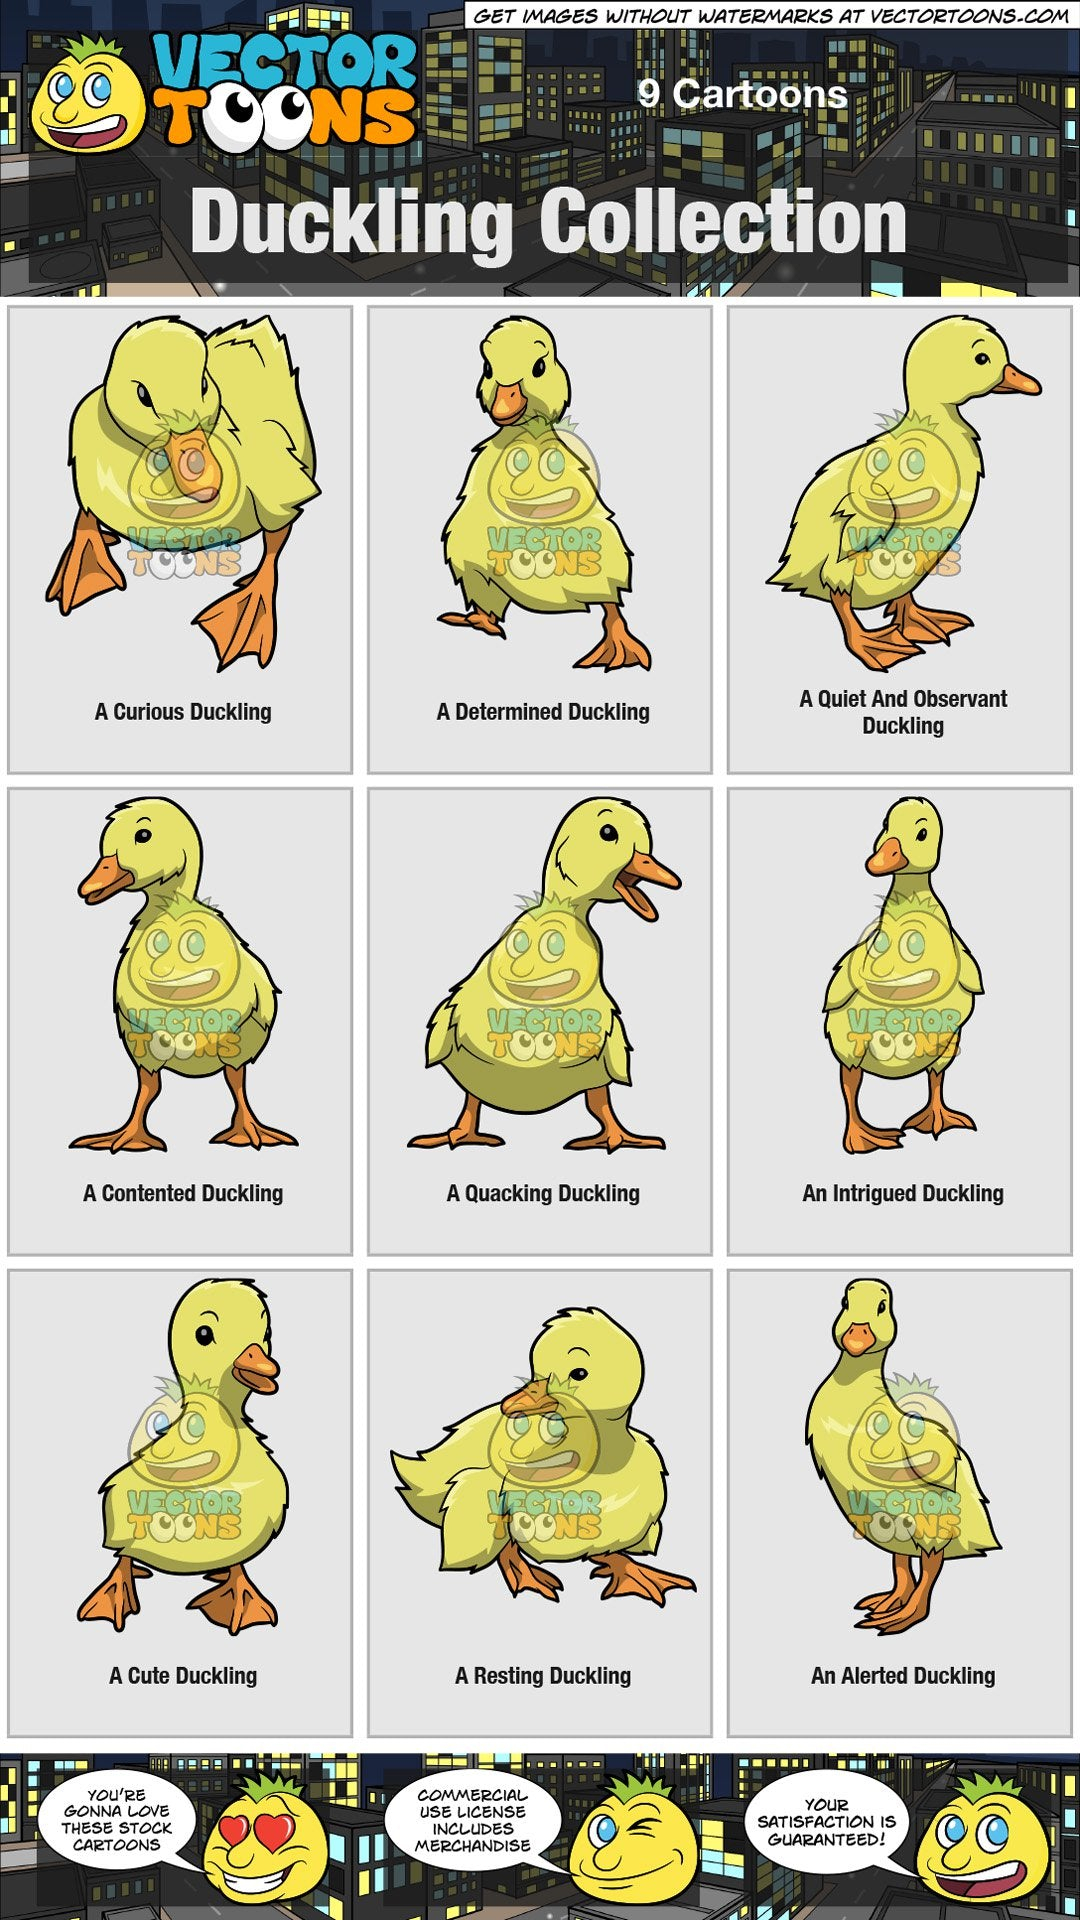 Duckling Collection